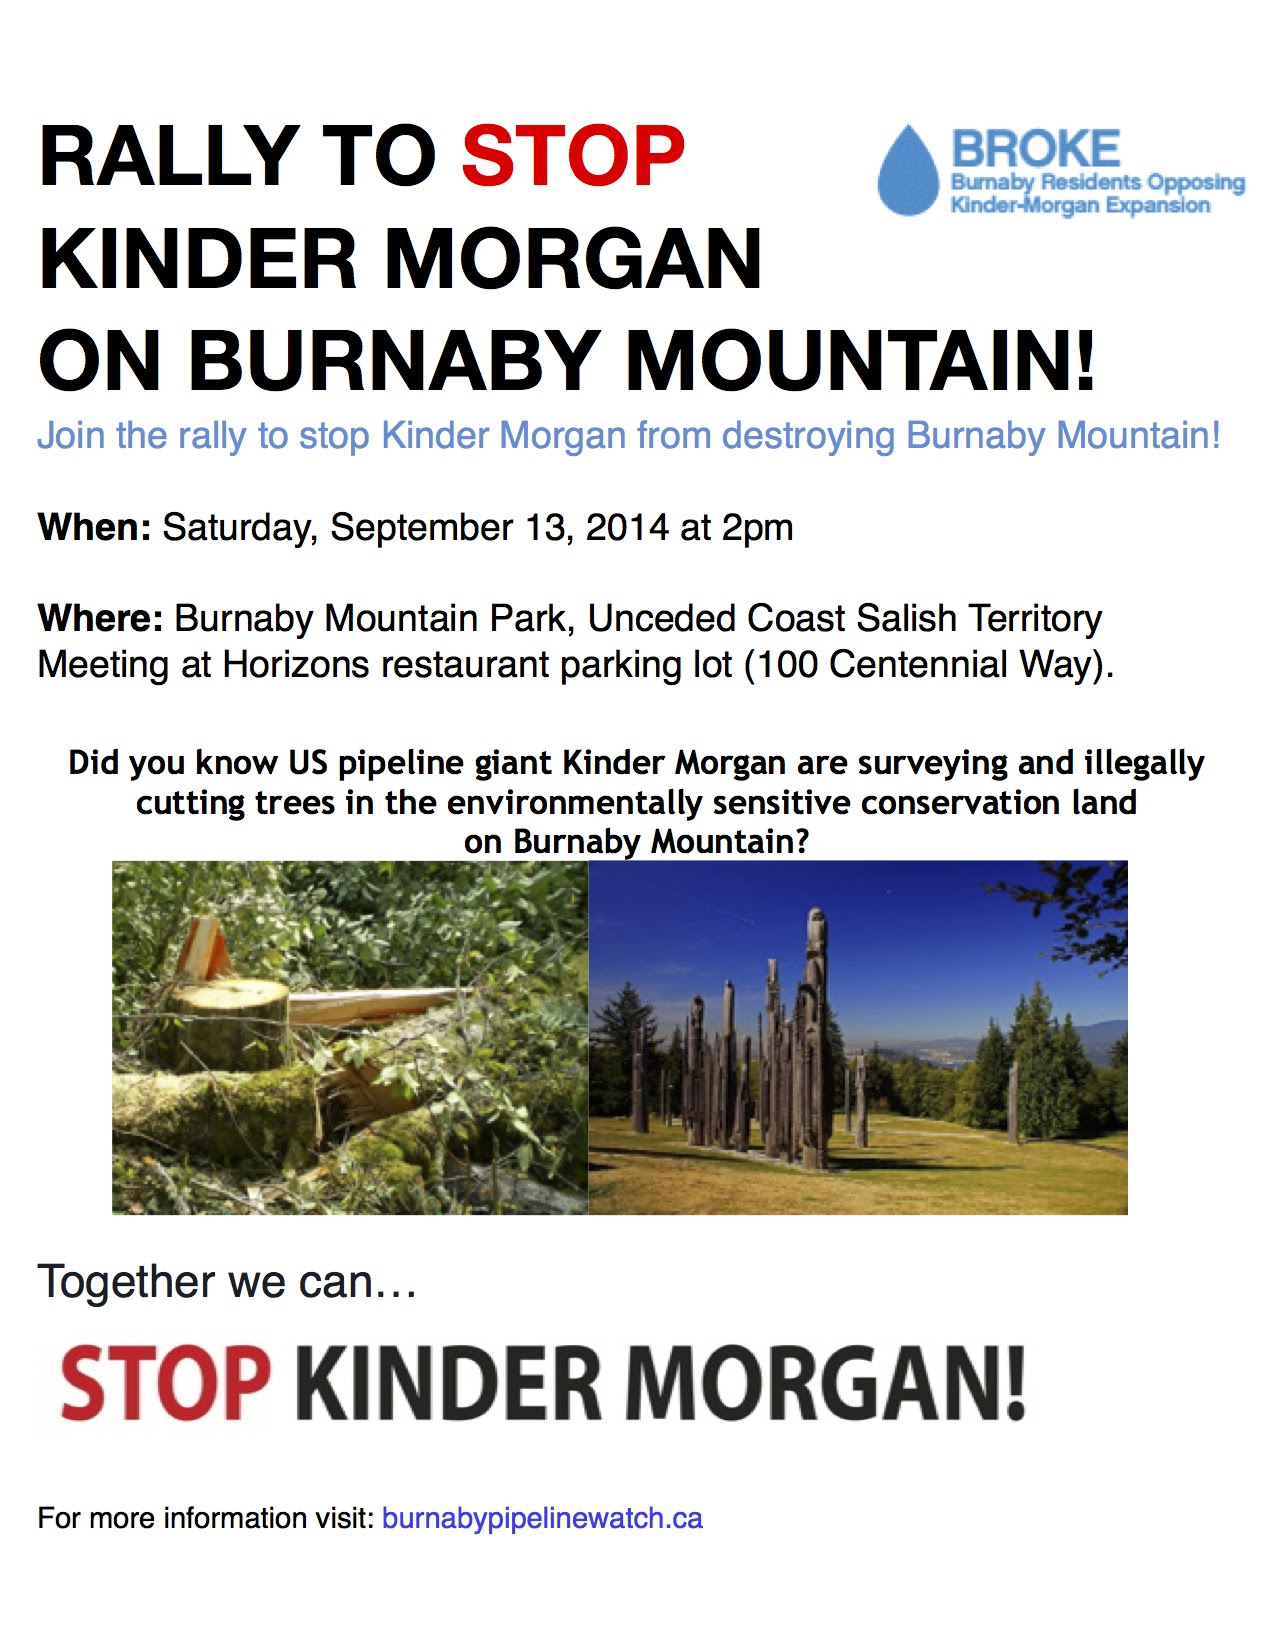 RALLY TO STOP KINDER MORGAN ON BURNABY MOUNTAIN!